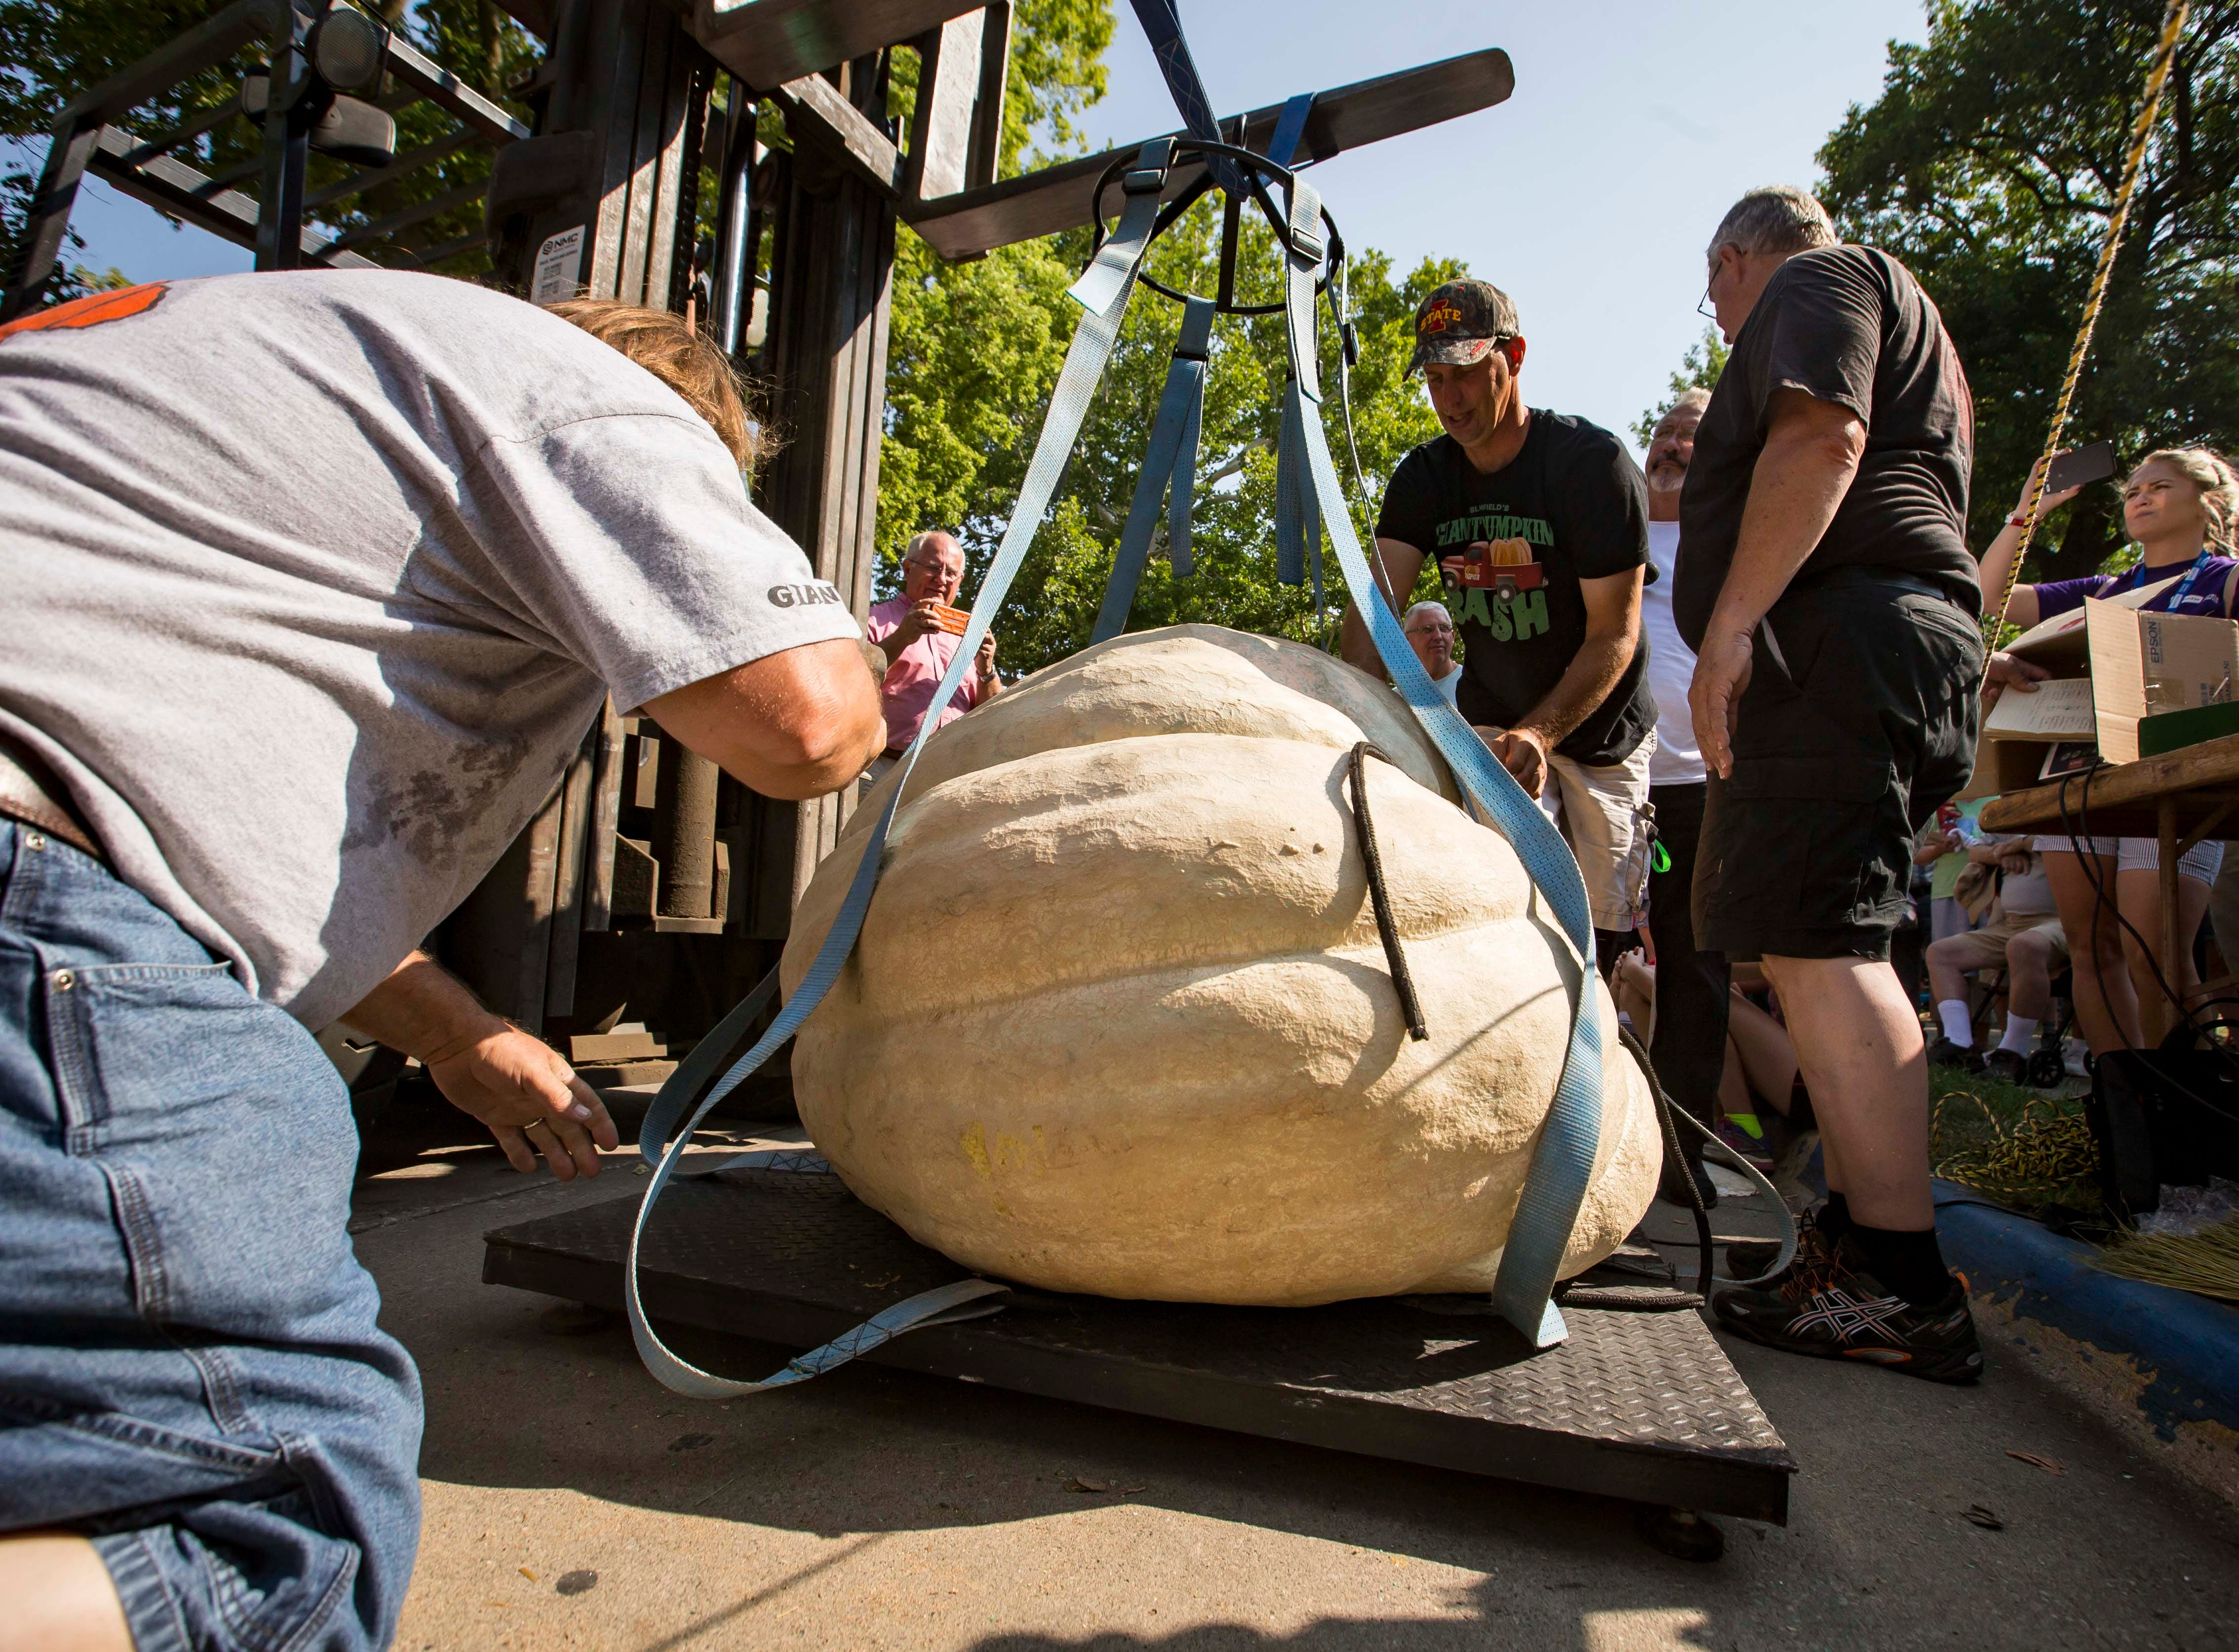 Dave Davis of Bloomfield has his pumpkin lifted to the scales to be weighed during the Big Pumpkin contest at the Iowa State Fair Friday, Aug. 10, 2018, in Des Moines, Iowa.